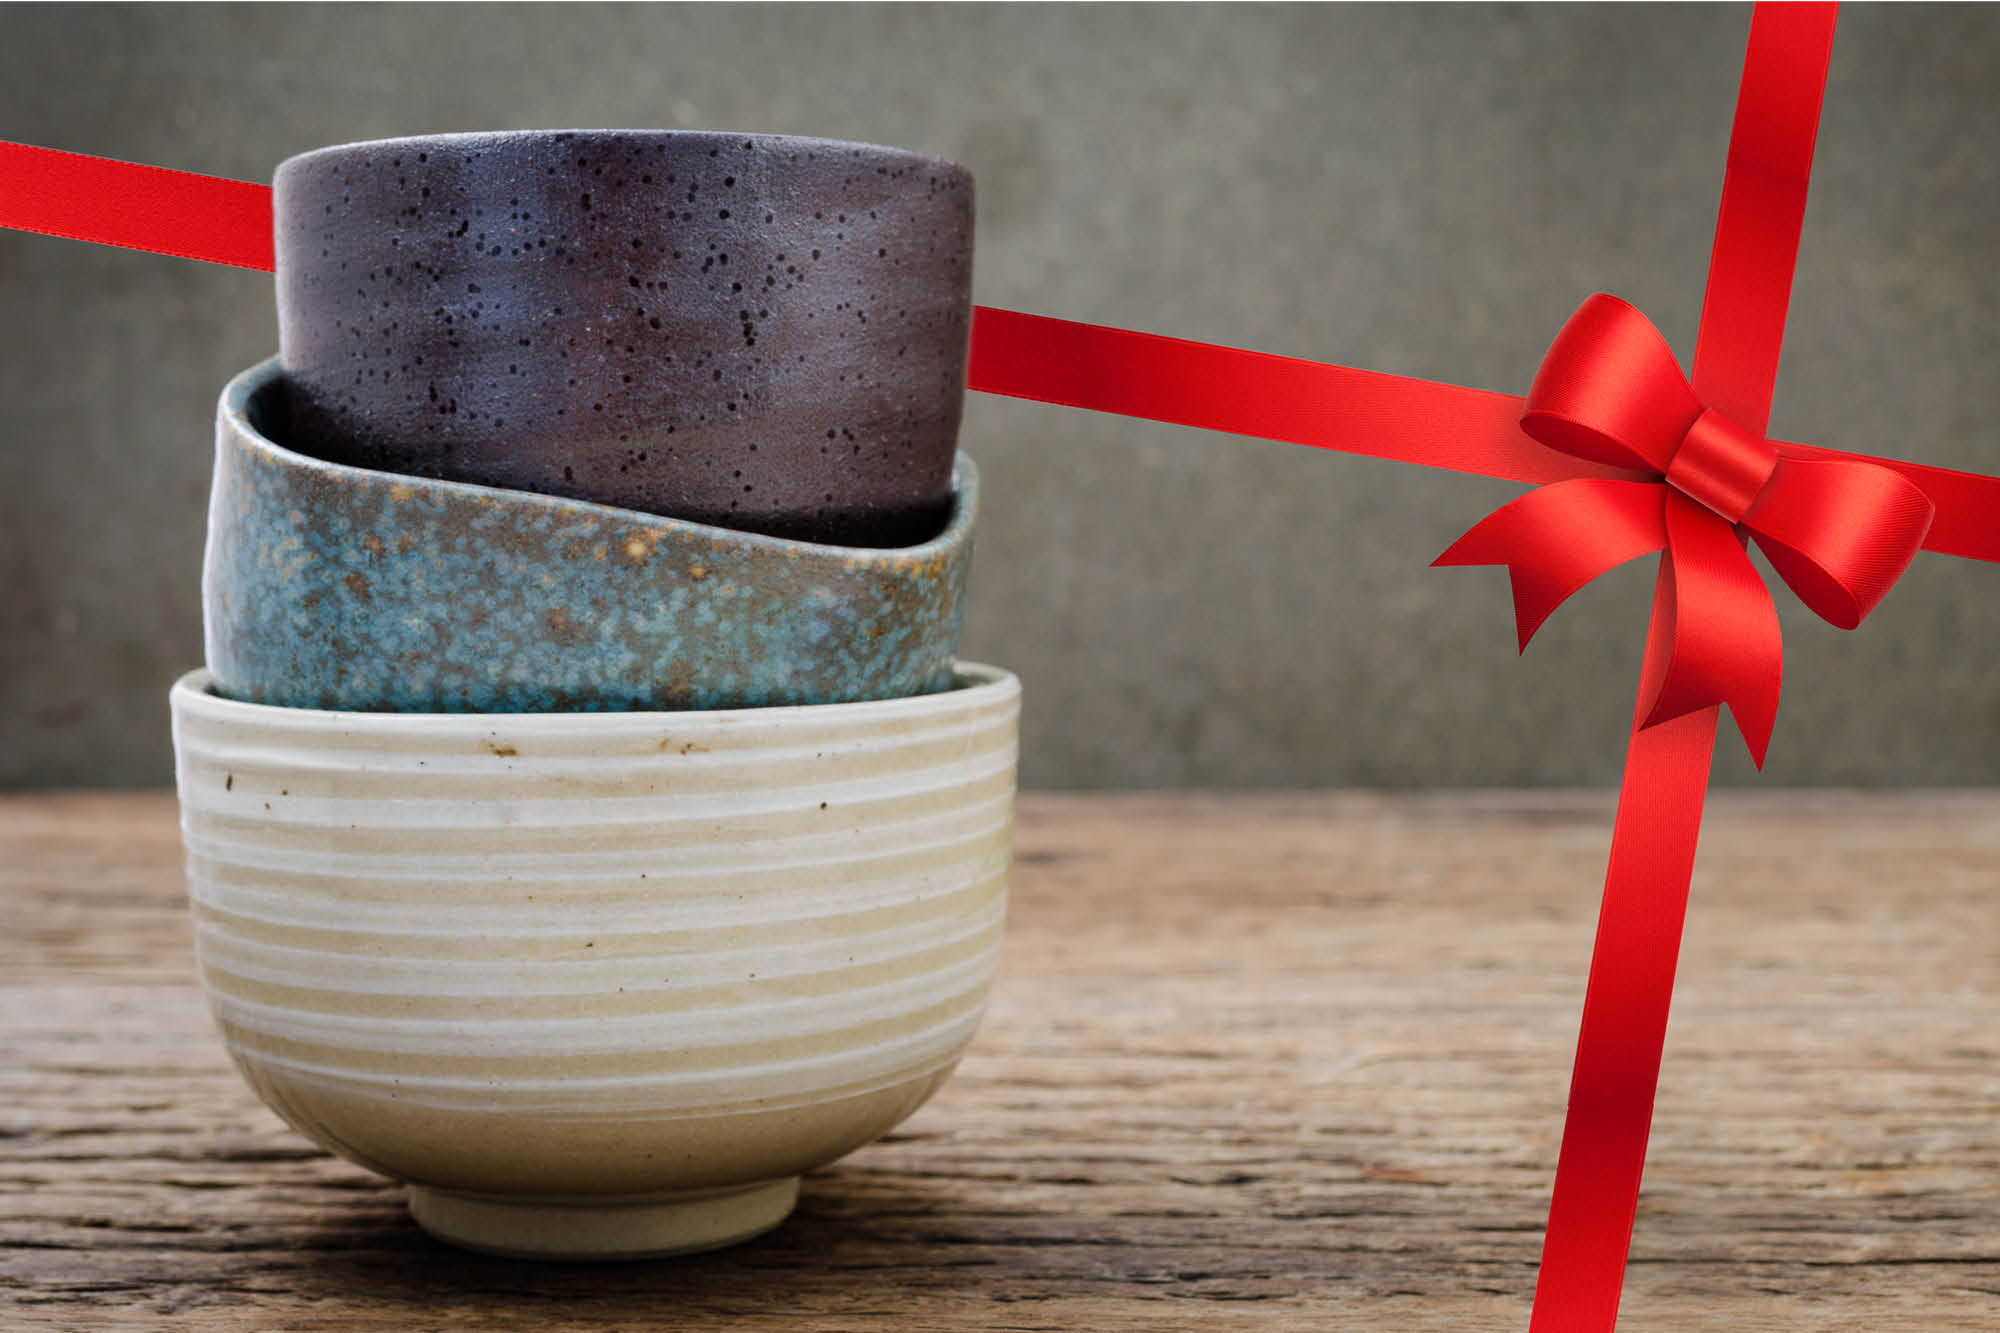 Photo of ceramic bowls with a red bow in the background.